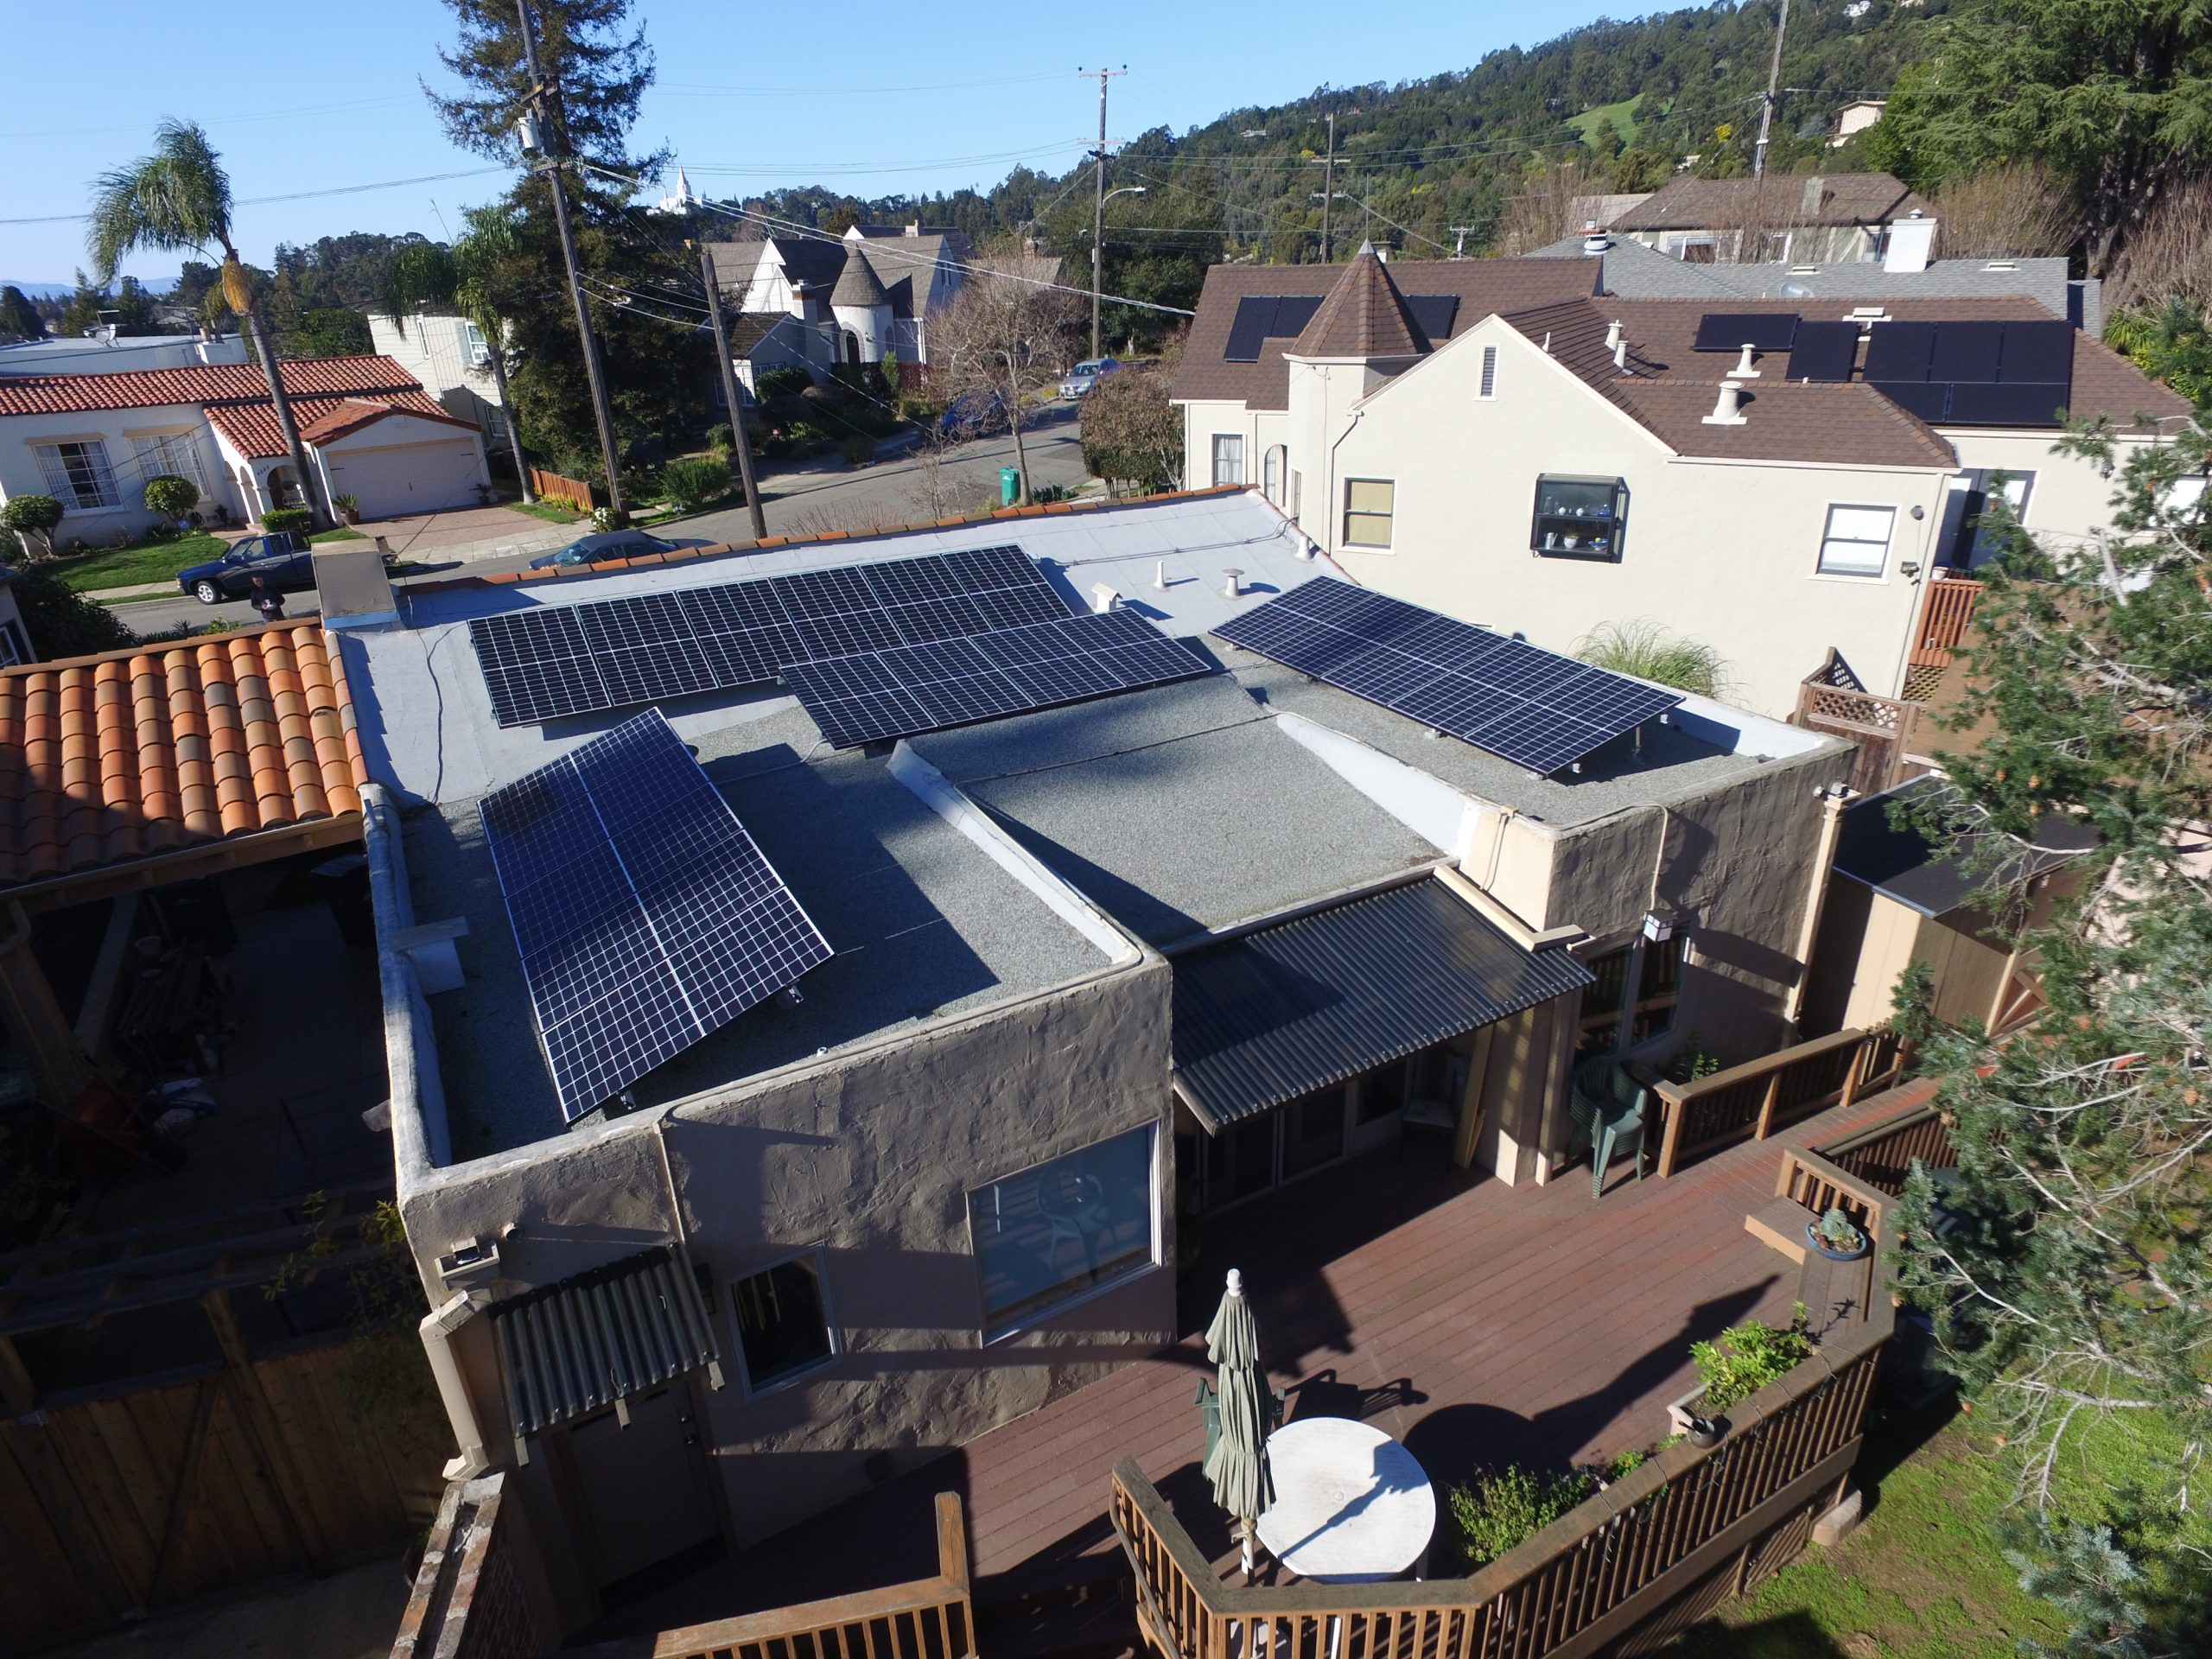 Residential solar installation showing four tilted panel arrays on an Oakland home